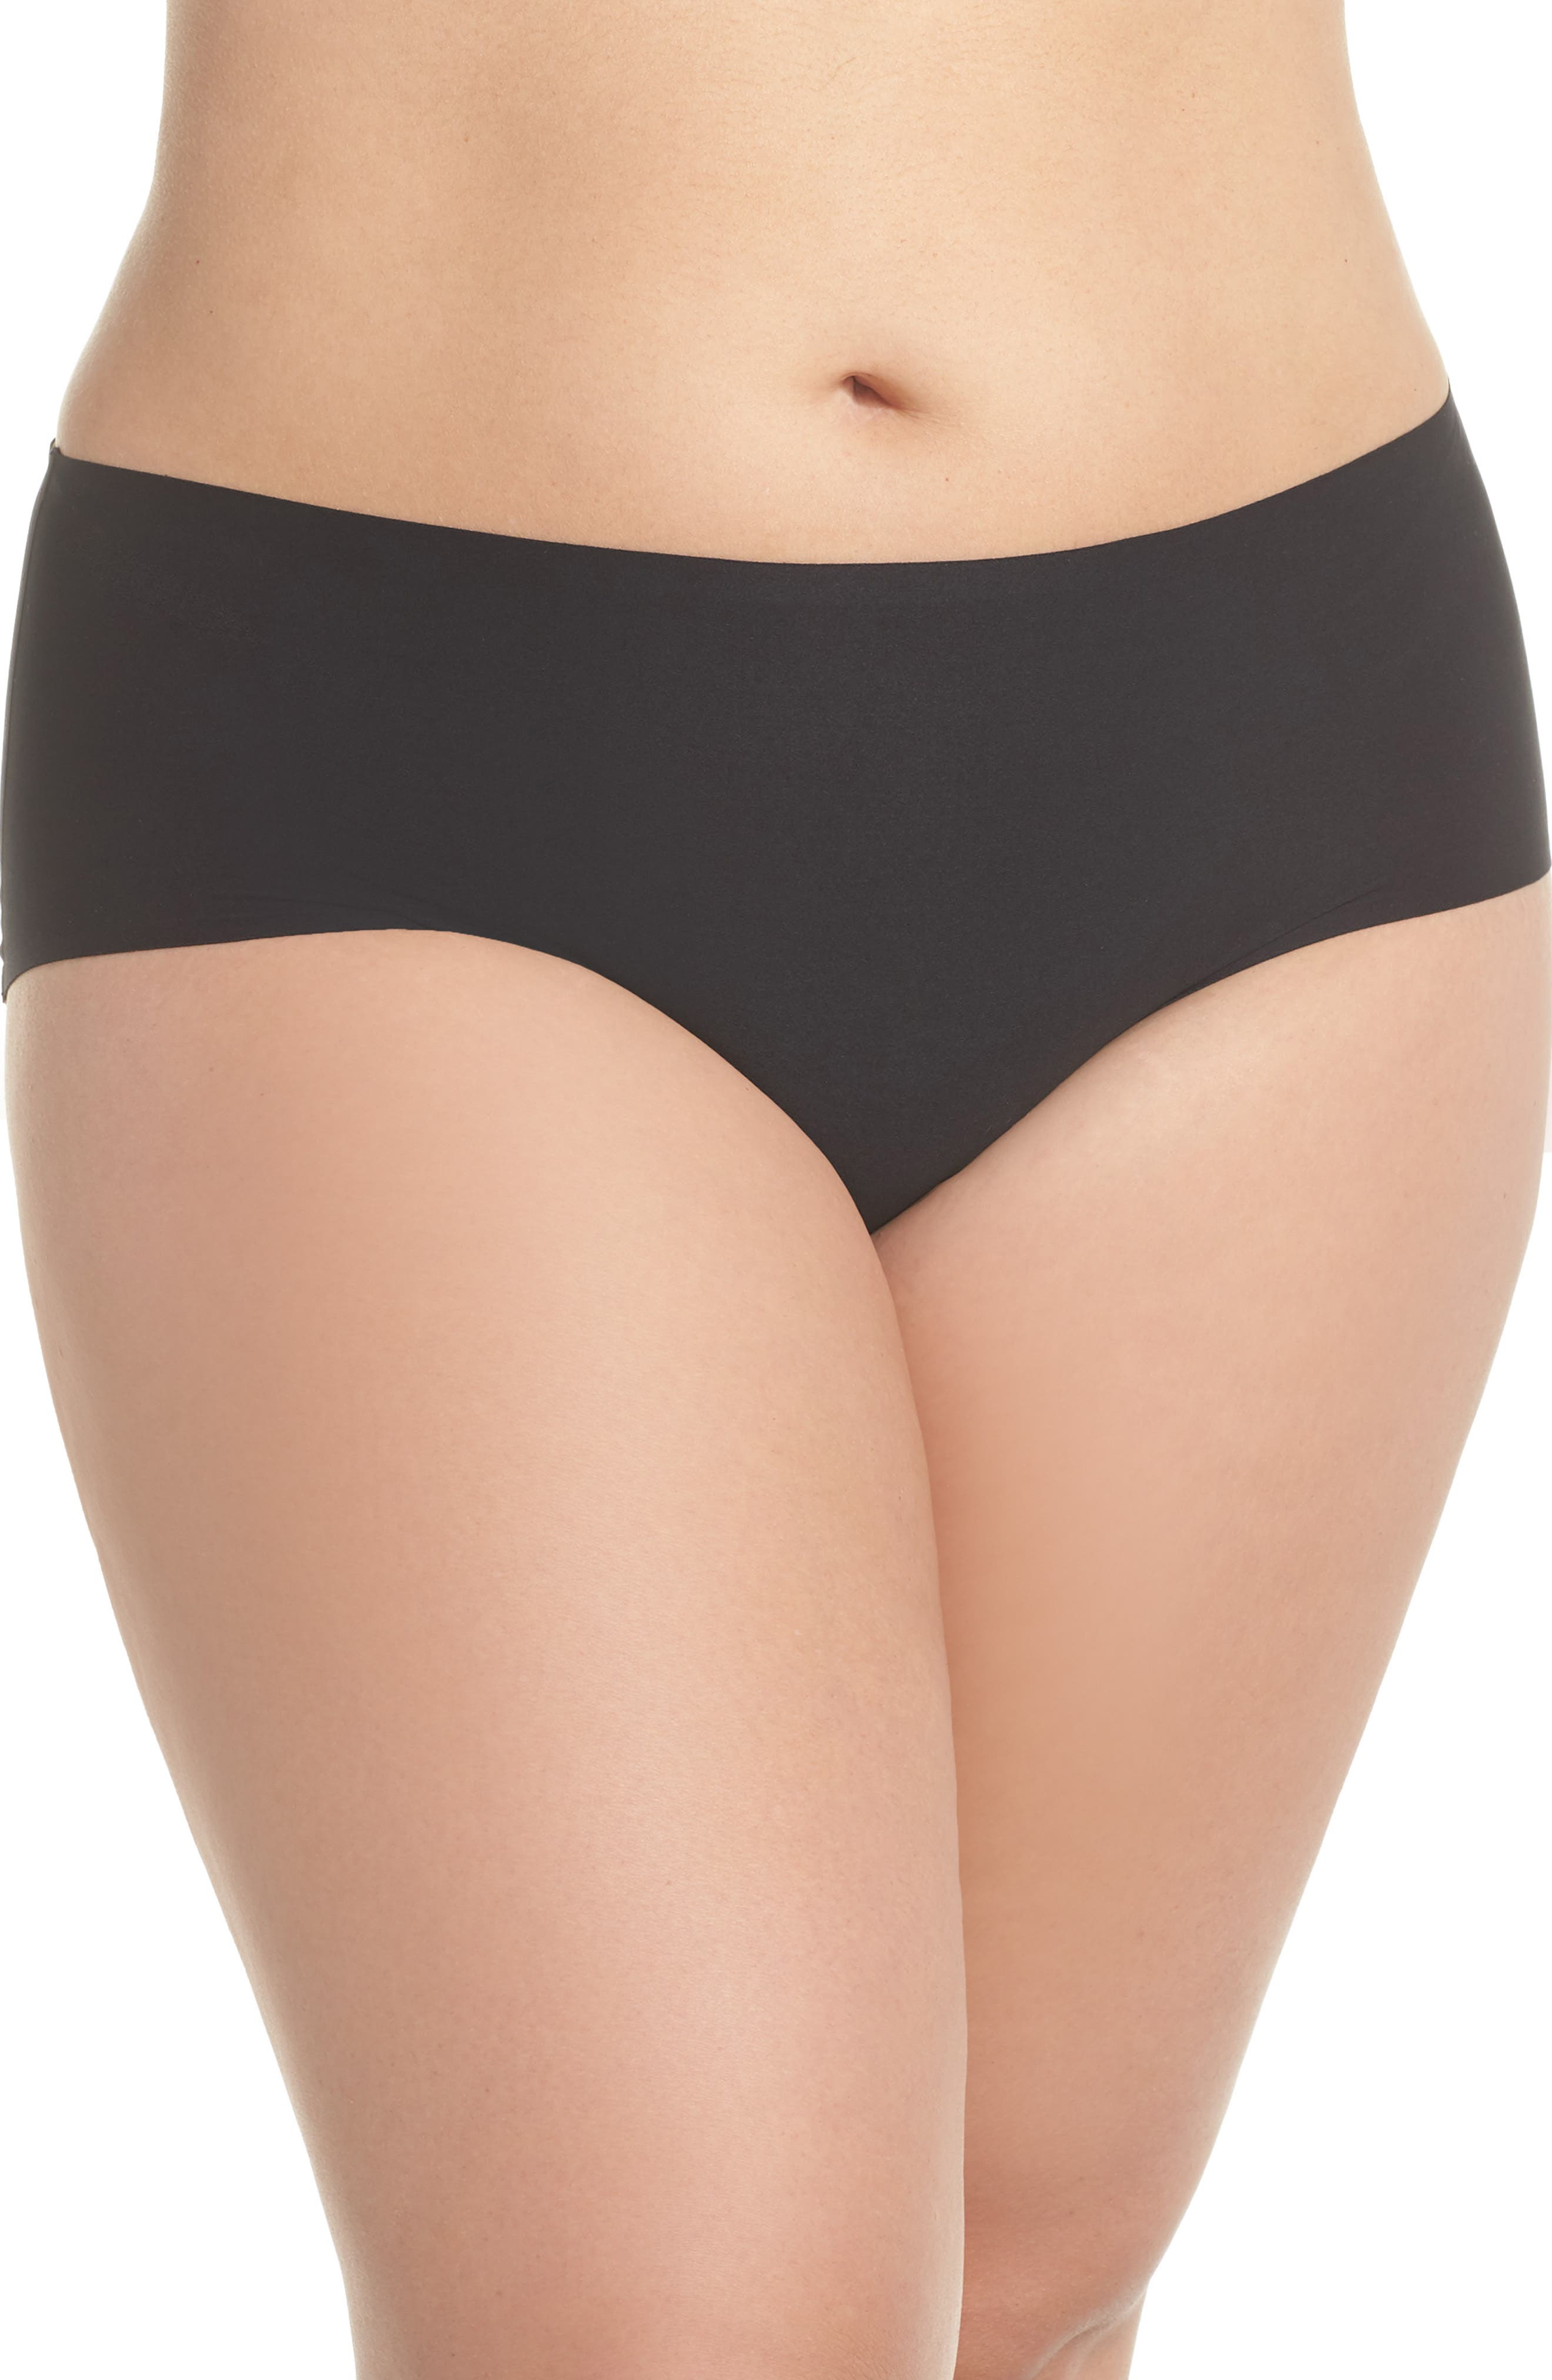 CHANTELLE LINGERIE, Soft Stretch Seamless Hipster Panties, Main thumbnail 1, color, BLACK